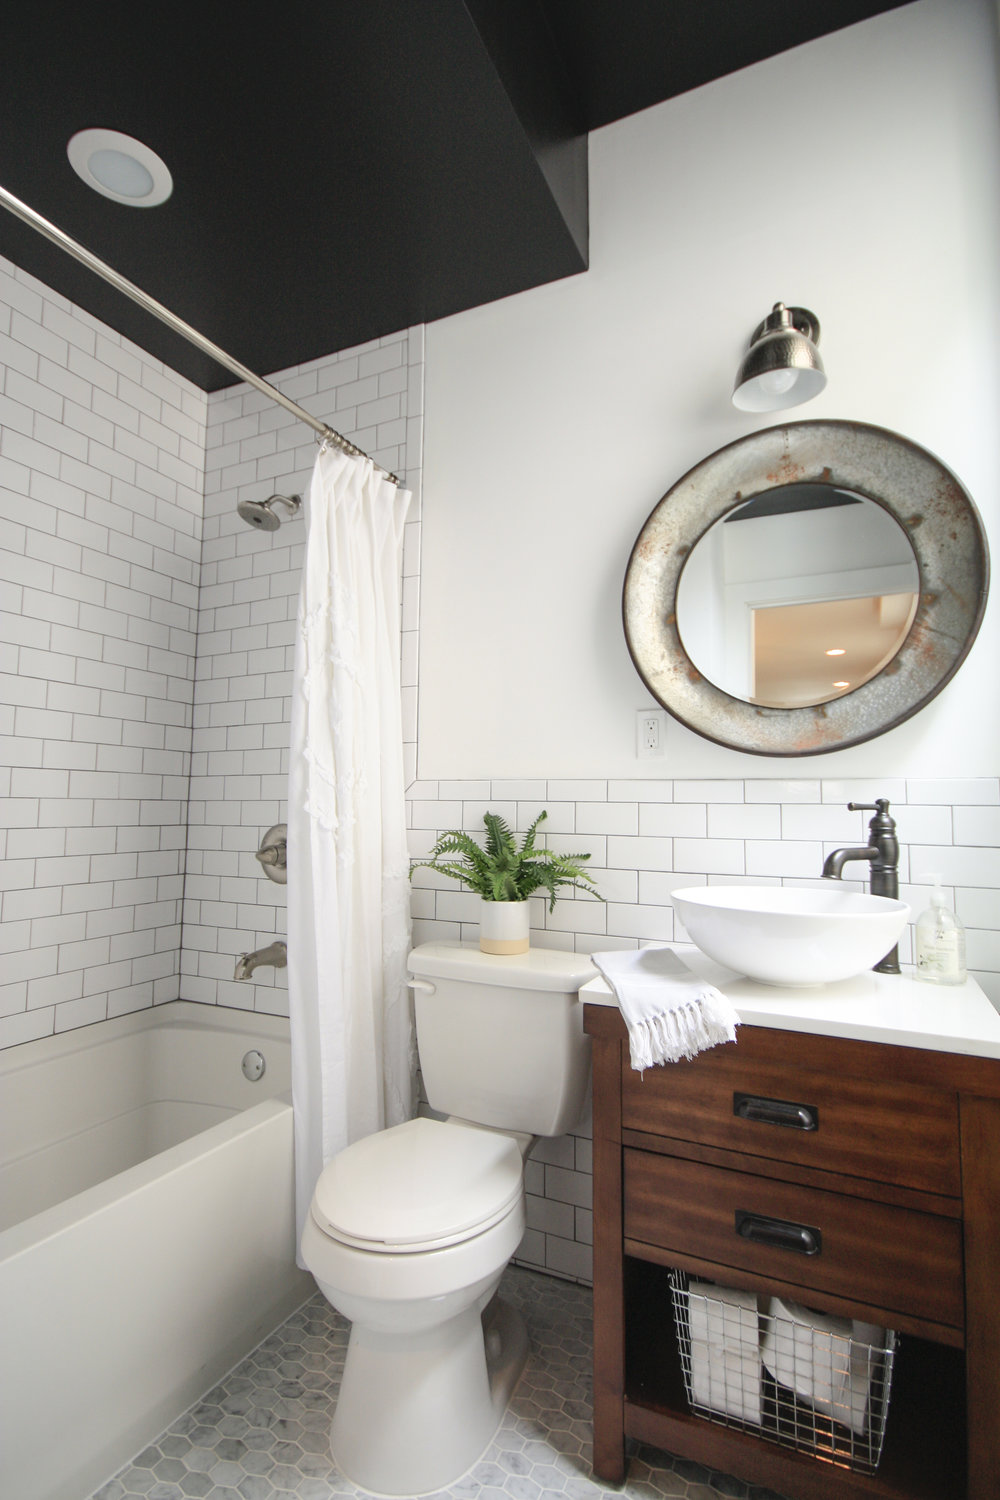 10 Ways To Use Subway Tile That Aren\'t Boring AF — FlippinWendy Design